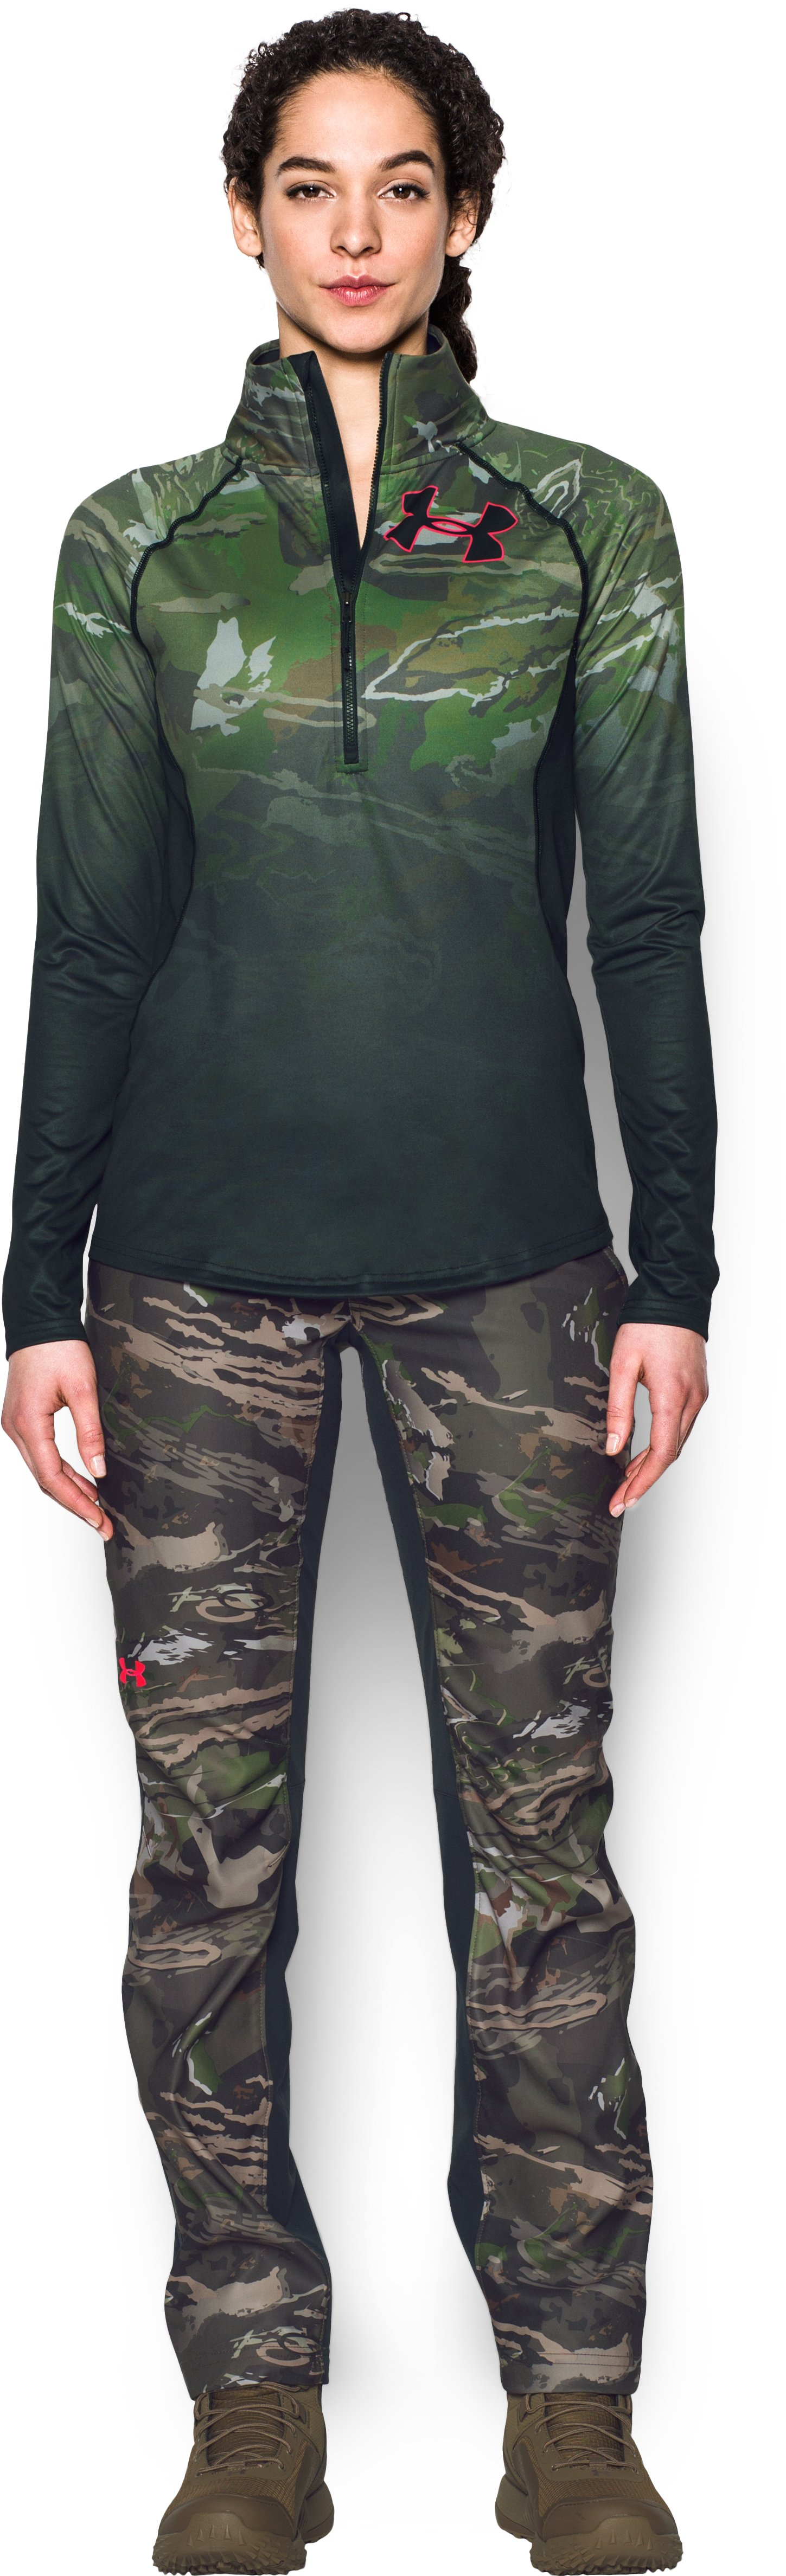 Women's Under Armour® Scent Control Tech ¼ Zip, RIDGE REAPER® FOREST, Front